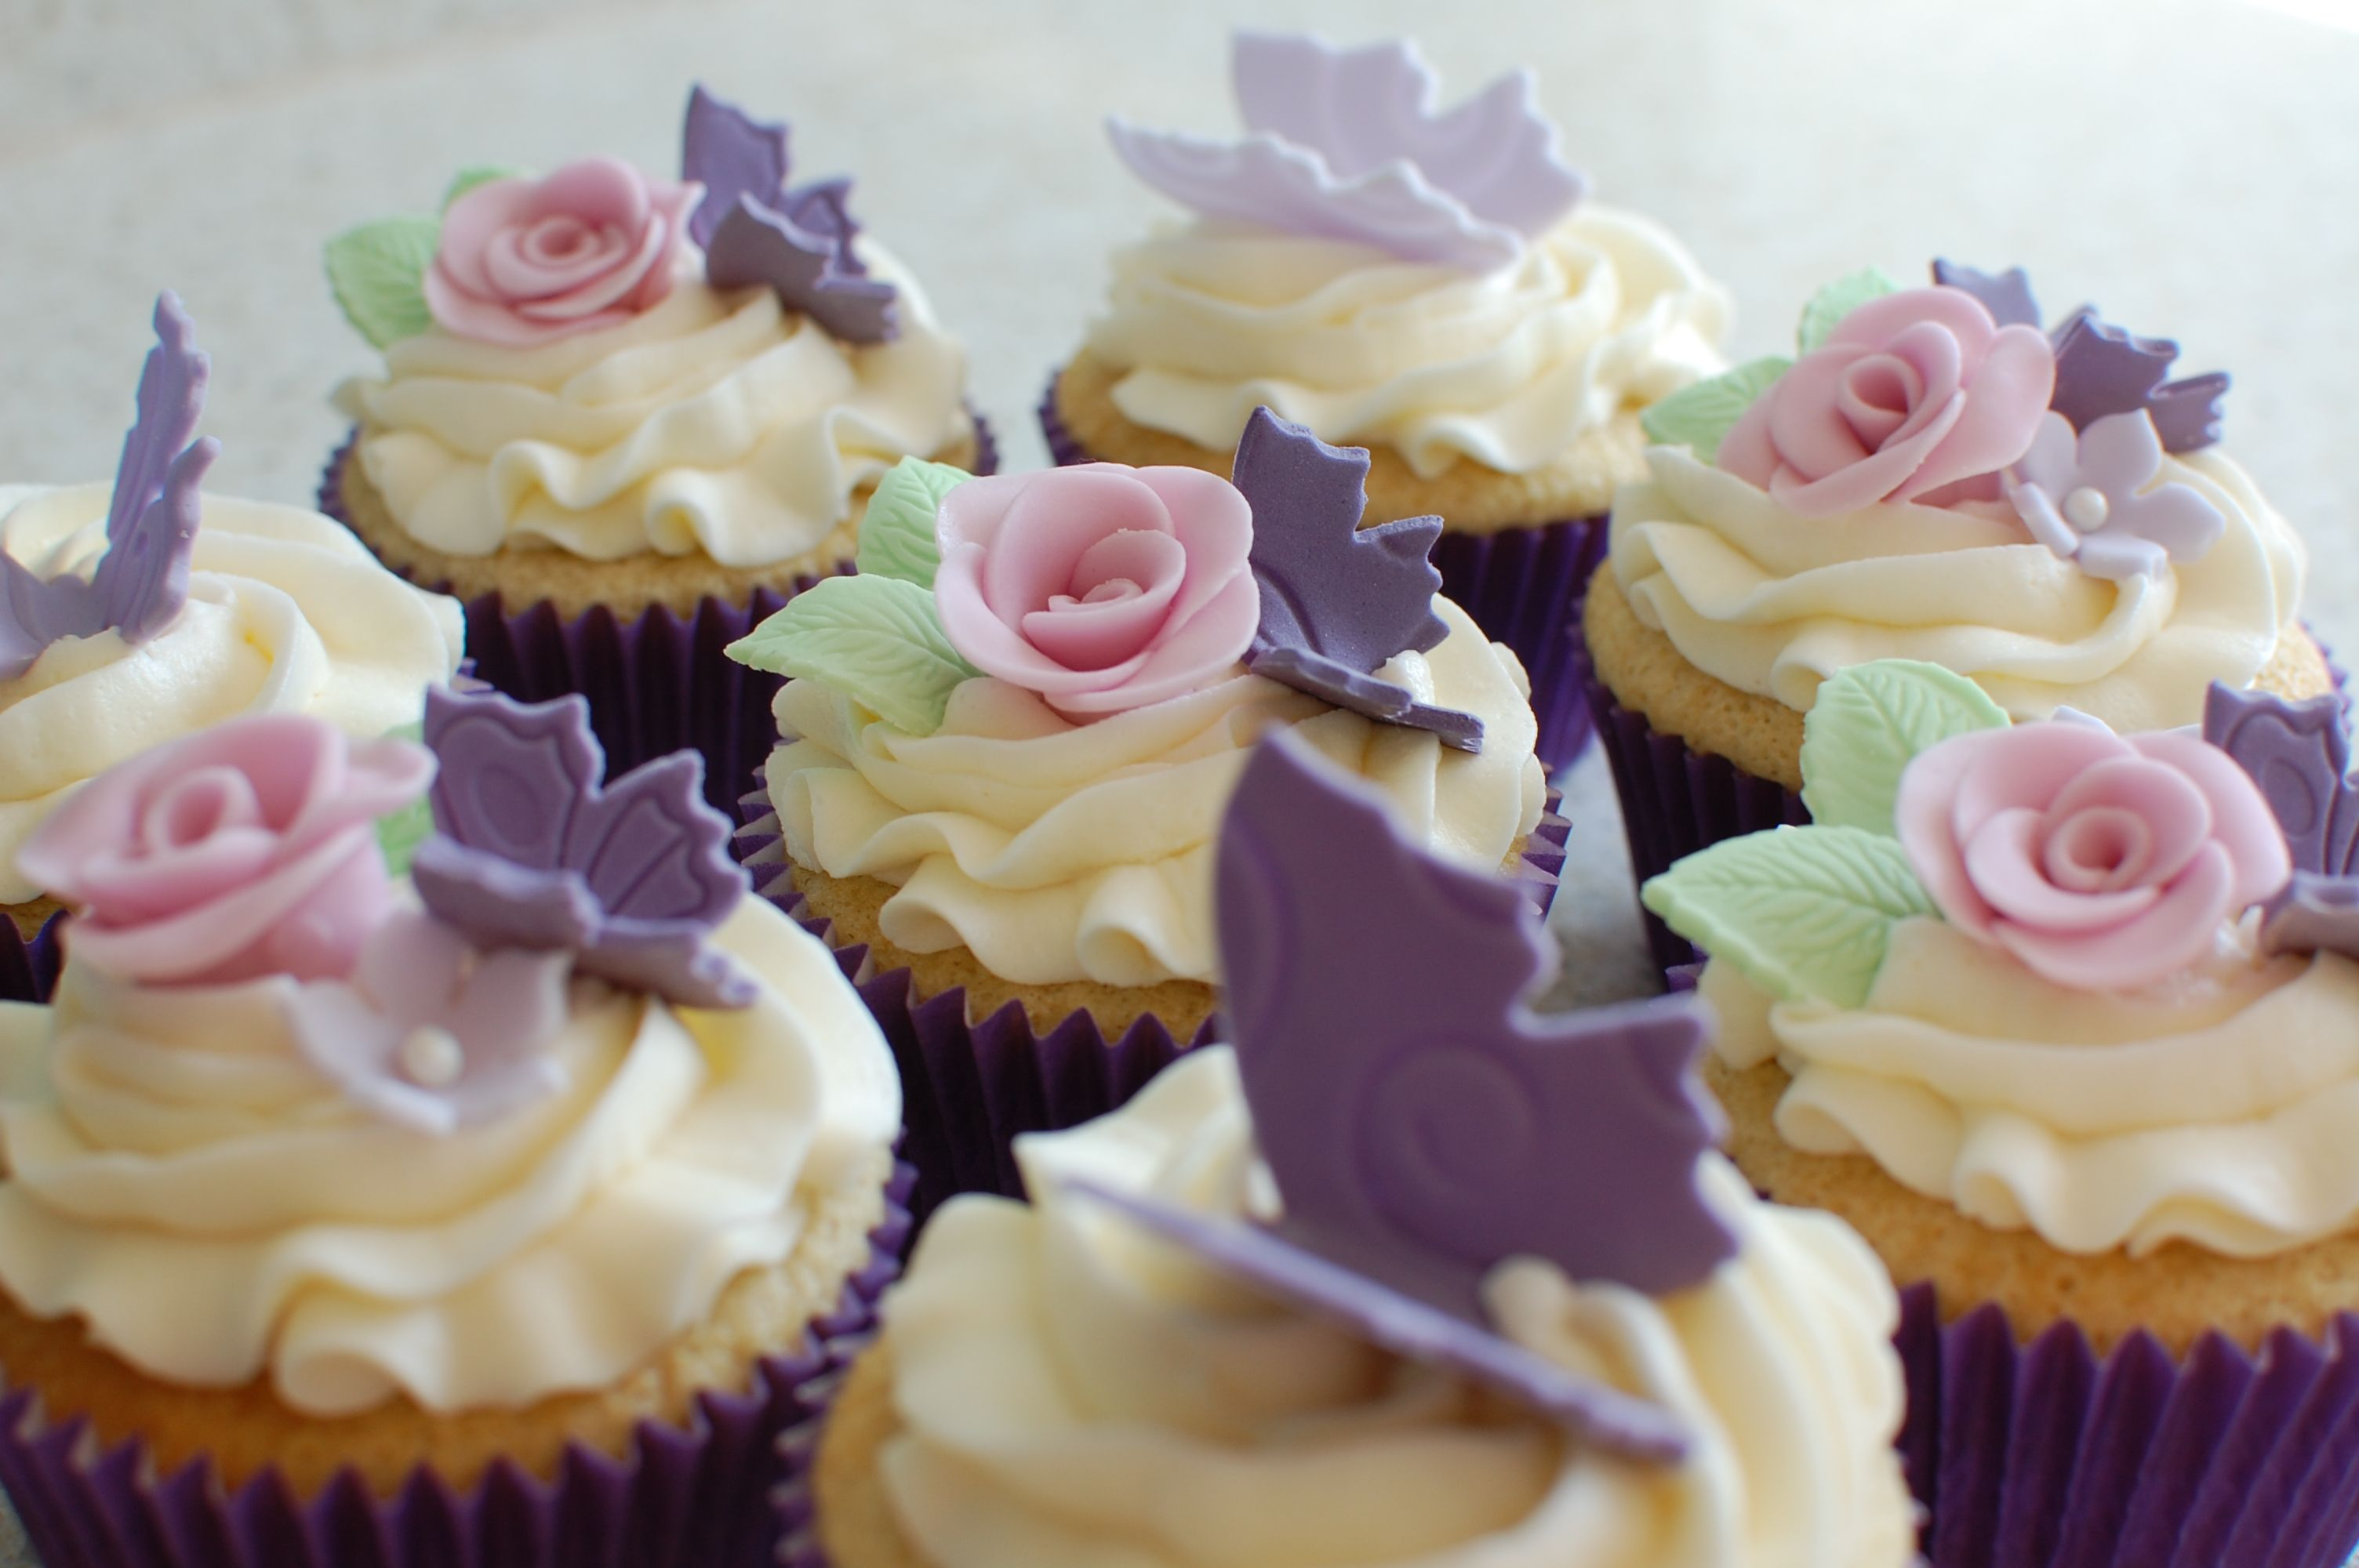 Simple fondant rose flowers & butterfly cupcakes.    Made for my children's school bake sale.